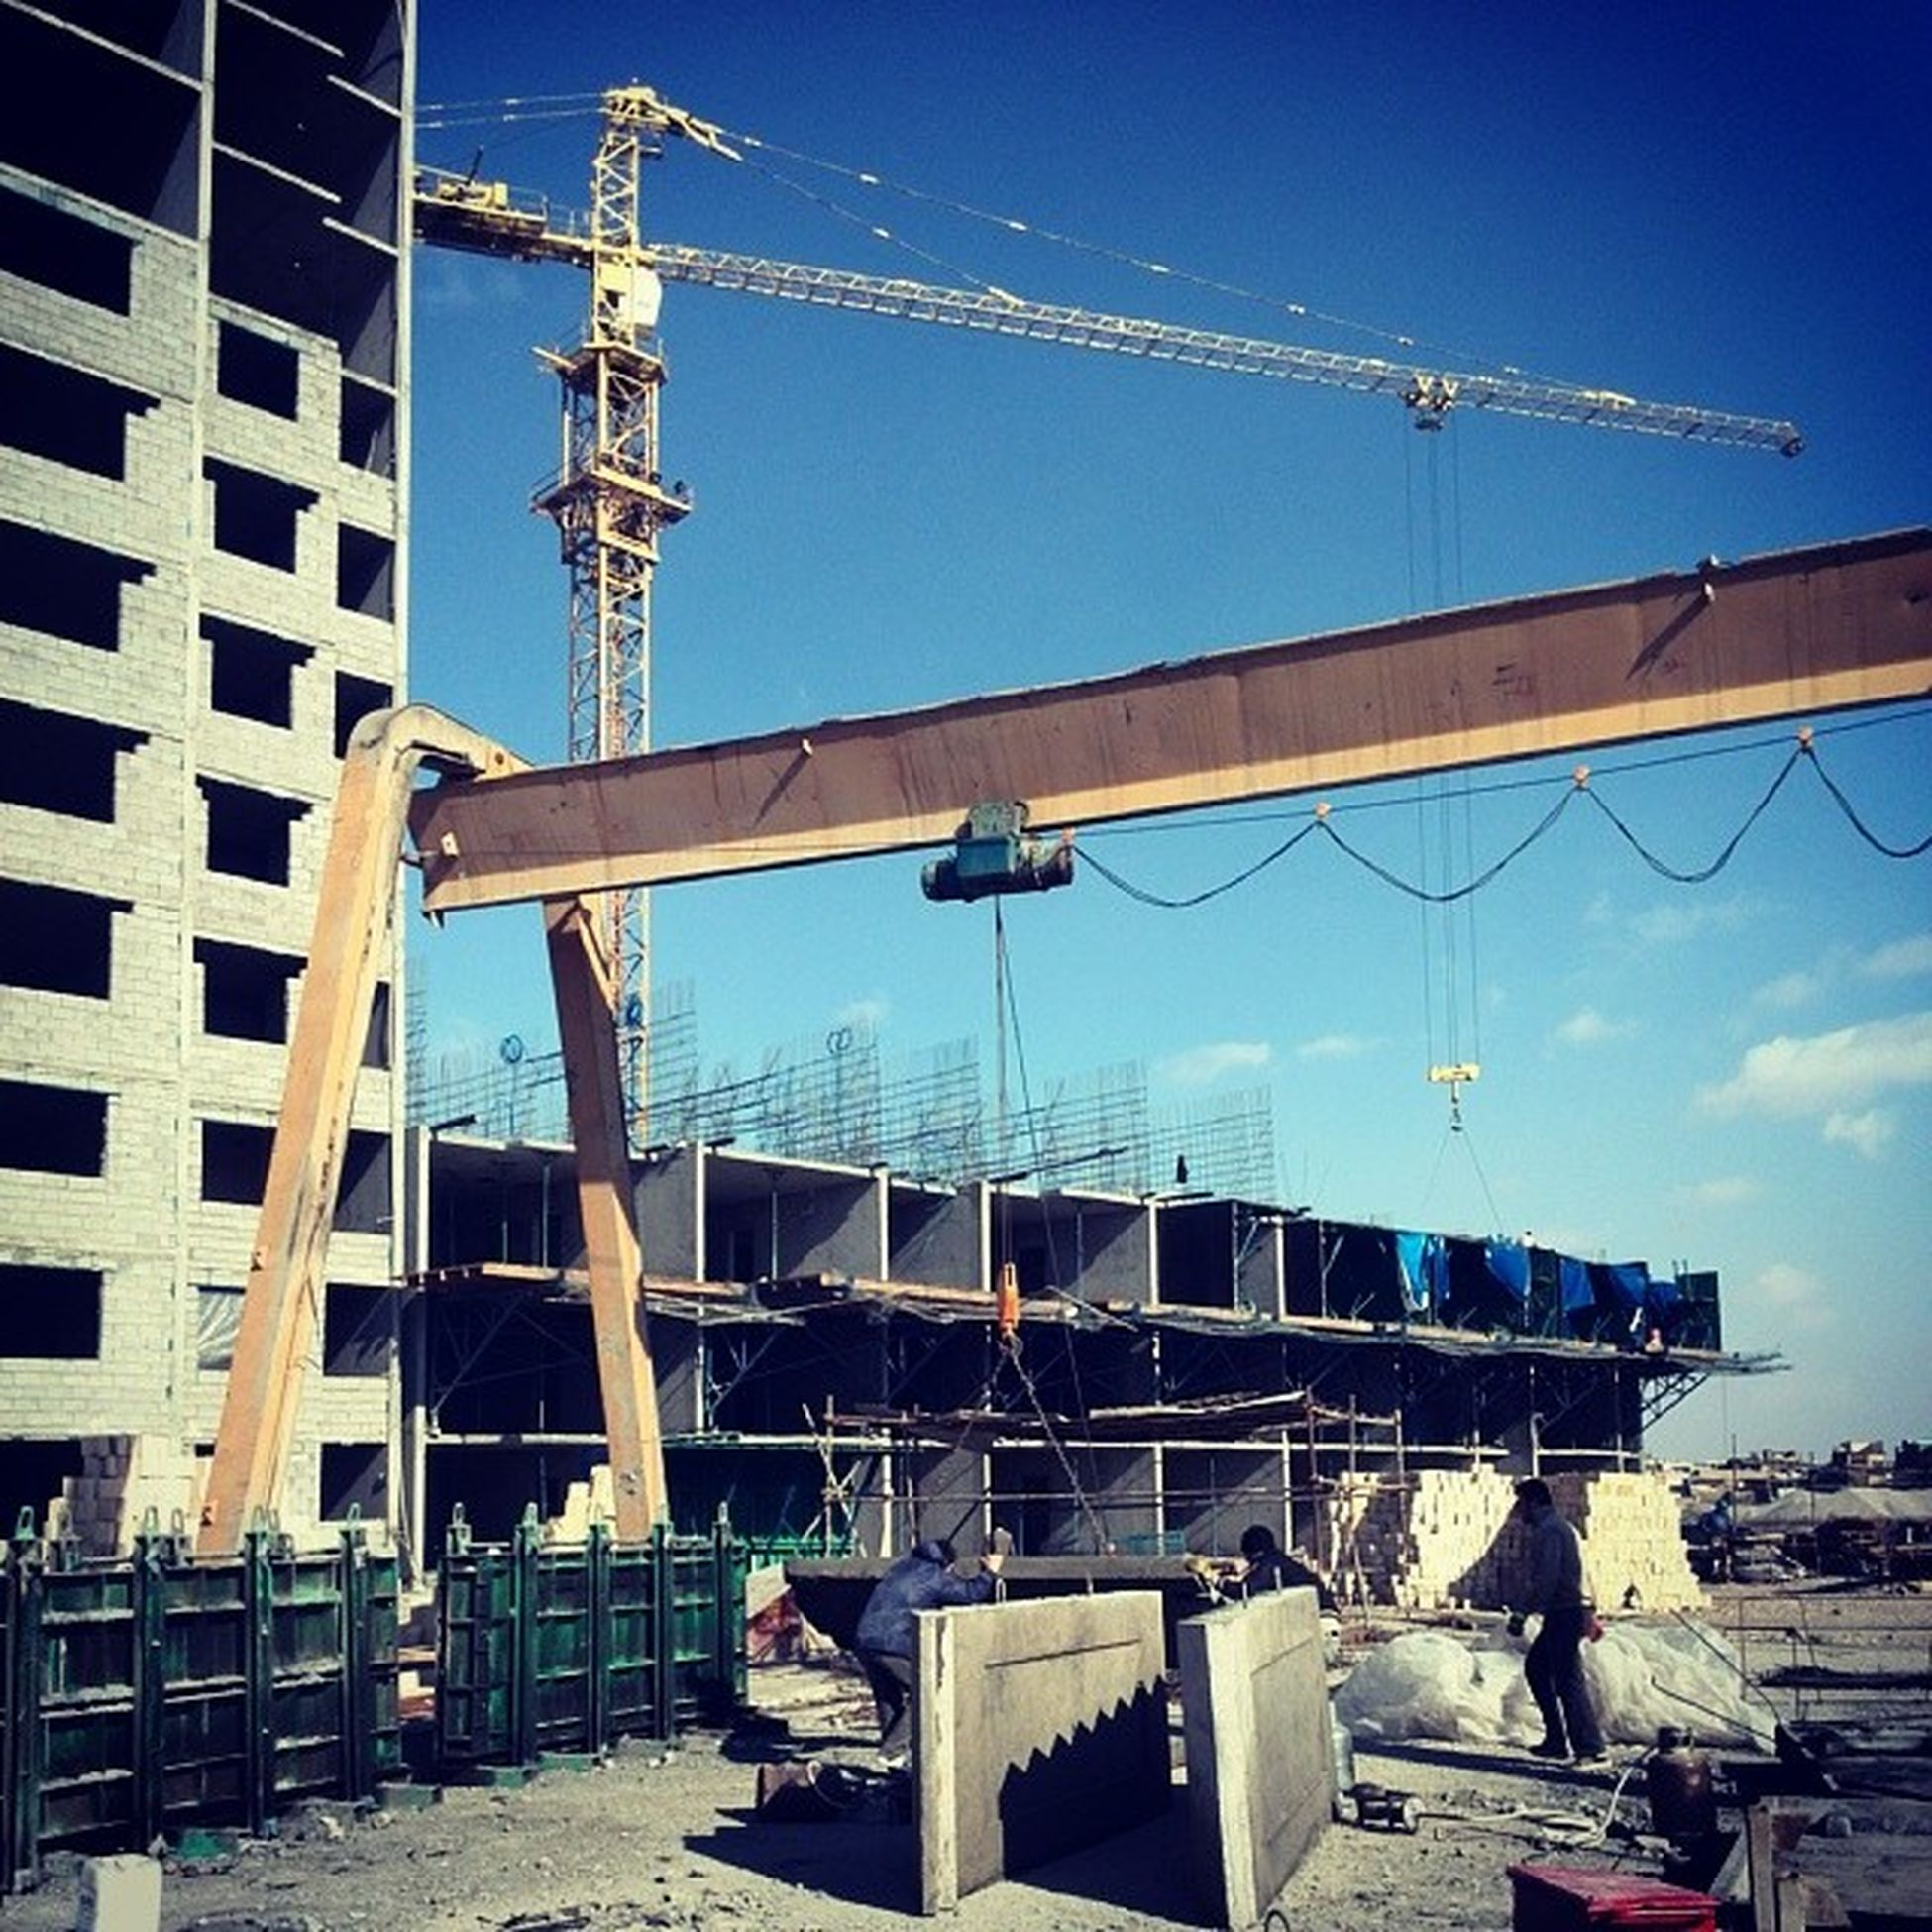 Tower Crane Structrue Step Wall Yellow Blue Sky Friday At Work Concrte Winter Now